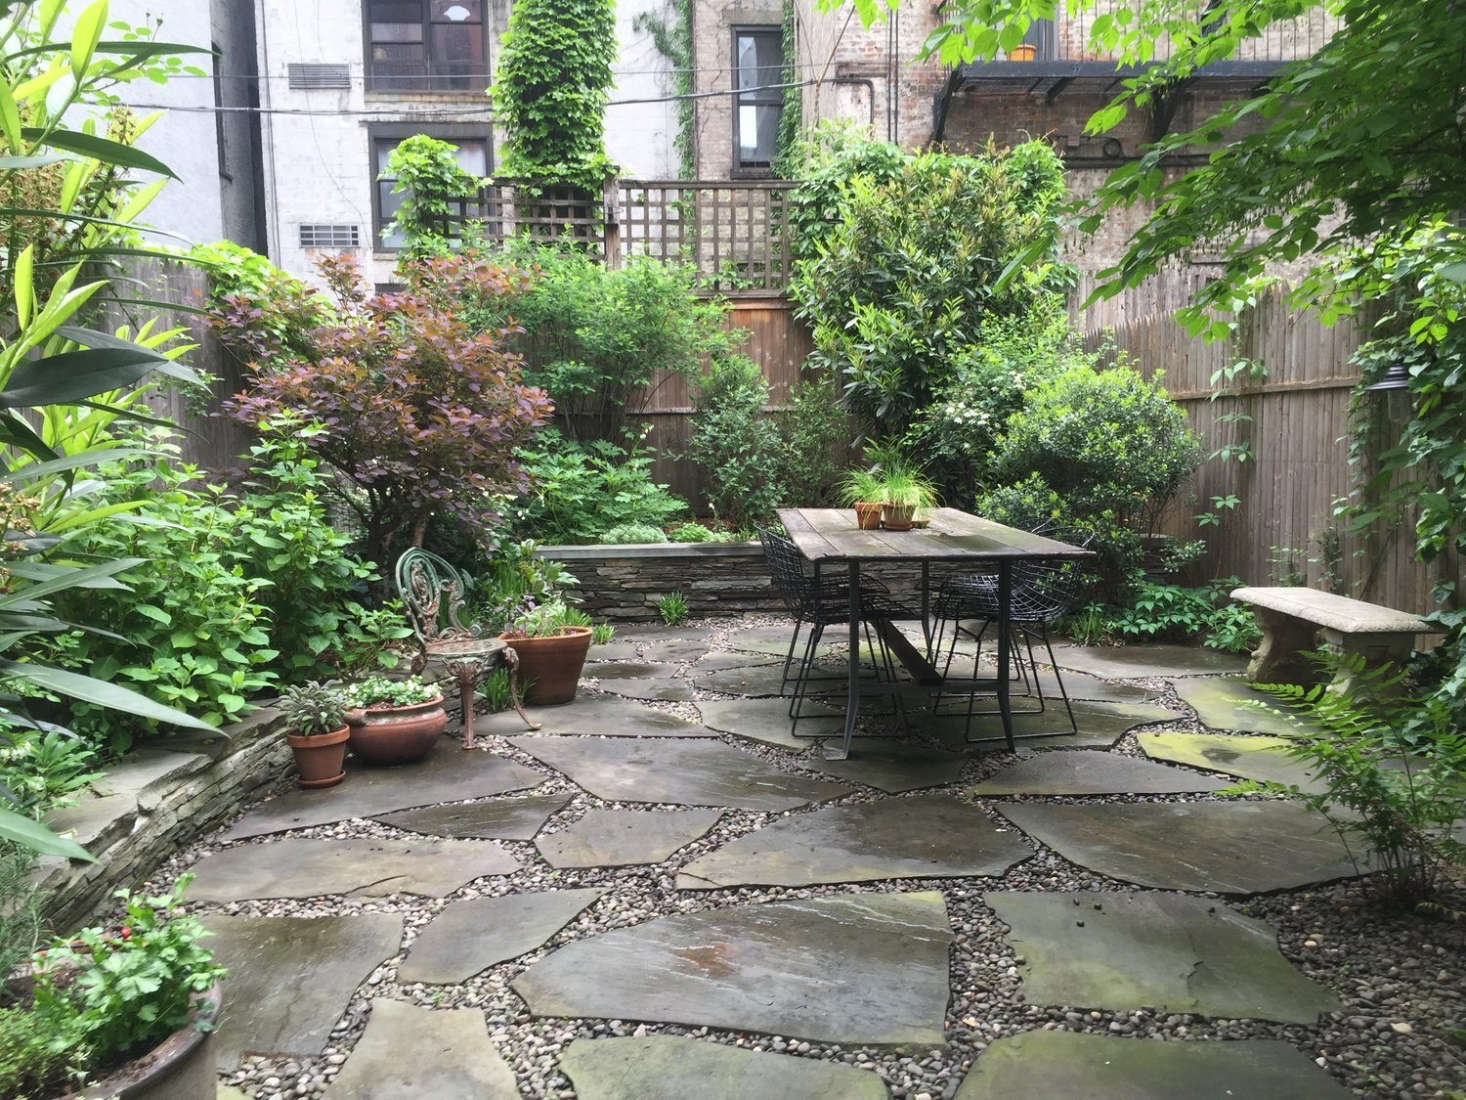 Rental Garden Makeovers: 10 Best Budget Ideas for an ... on Backyard Pebbles Design id=71554